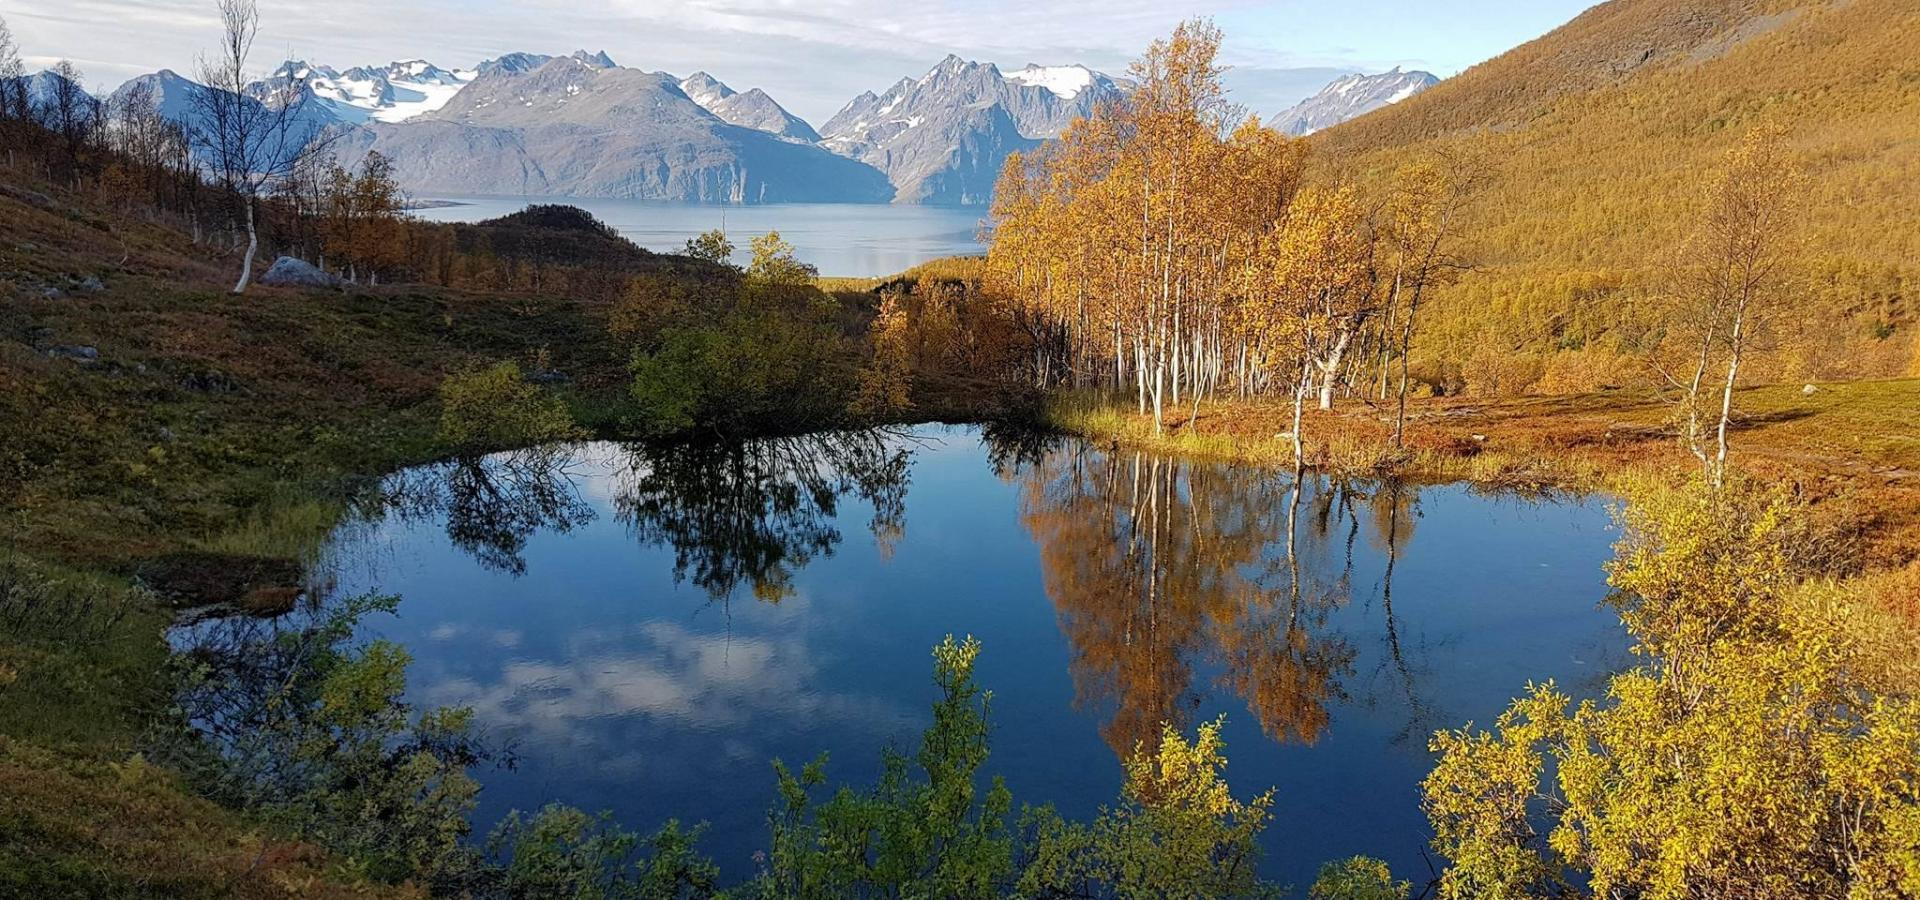 Small lake surrounded by autumn colours, the Lyngenfjord and Lyngen Alps in the background